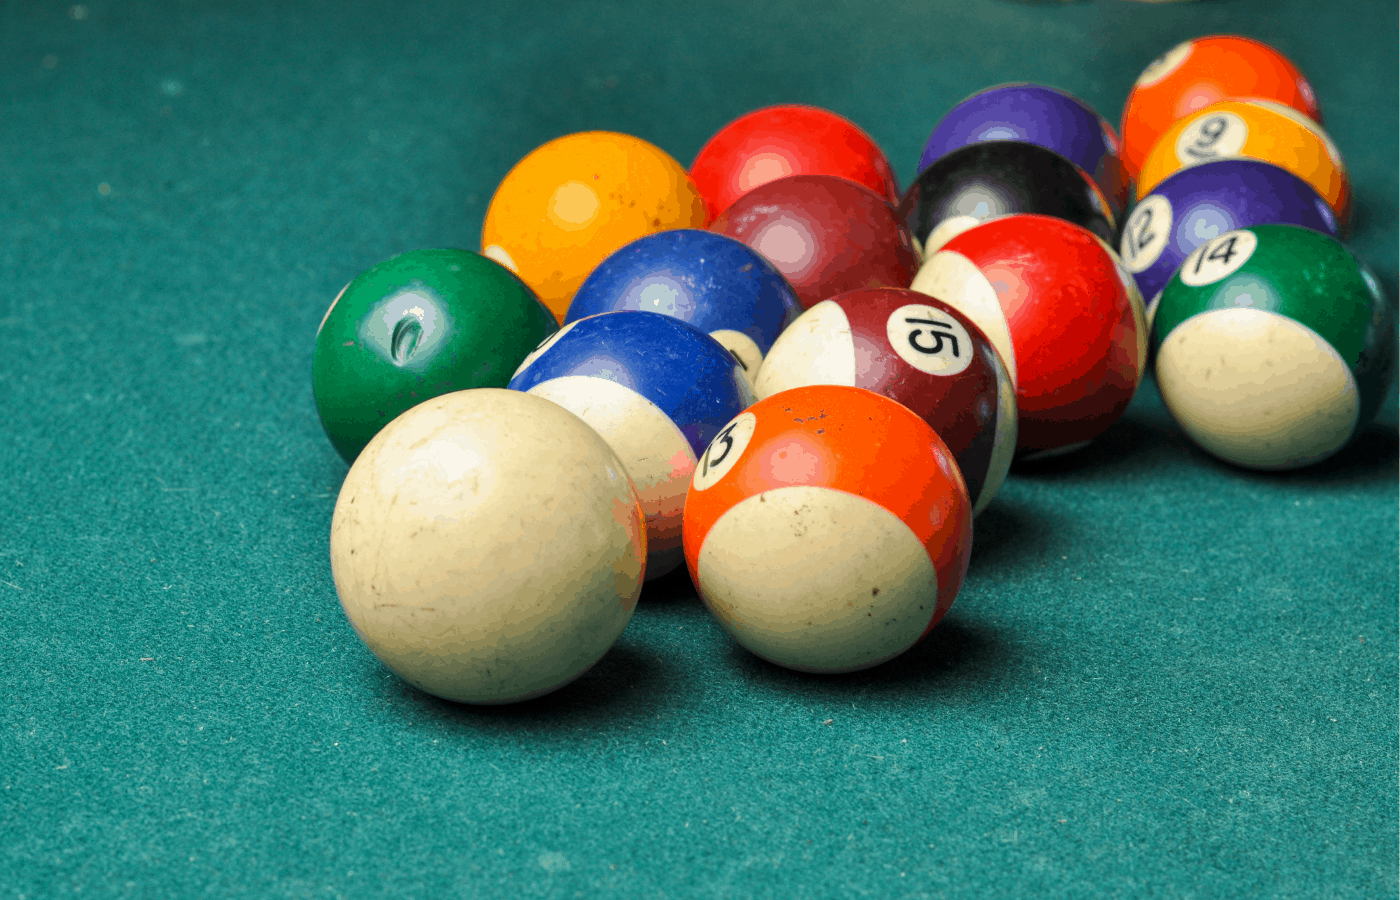 can you use bleach to clean pool balls